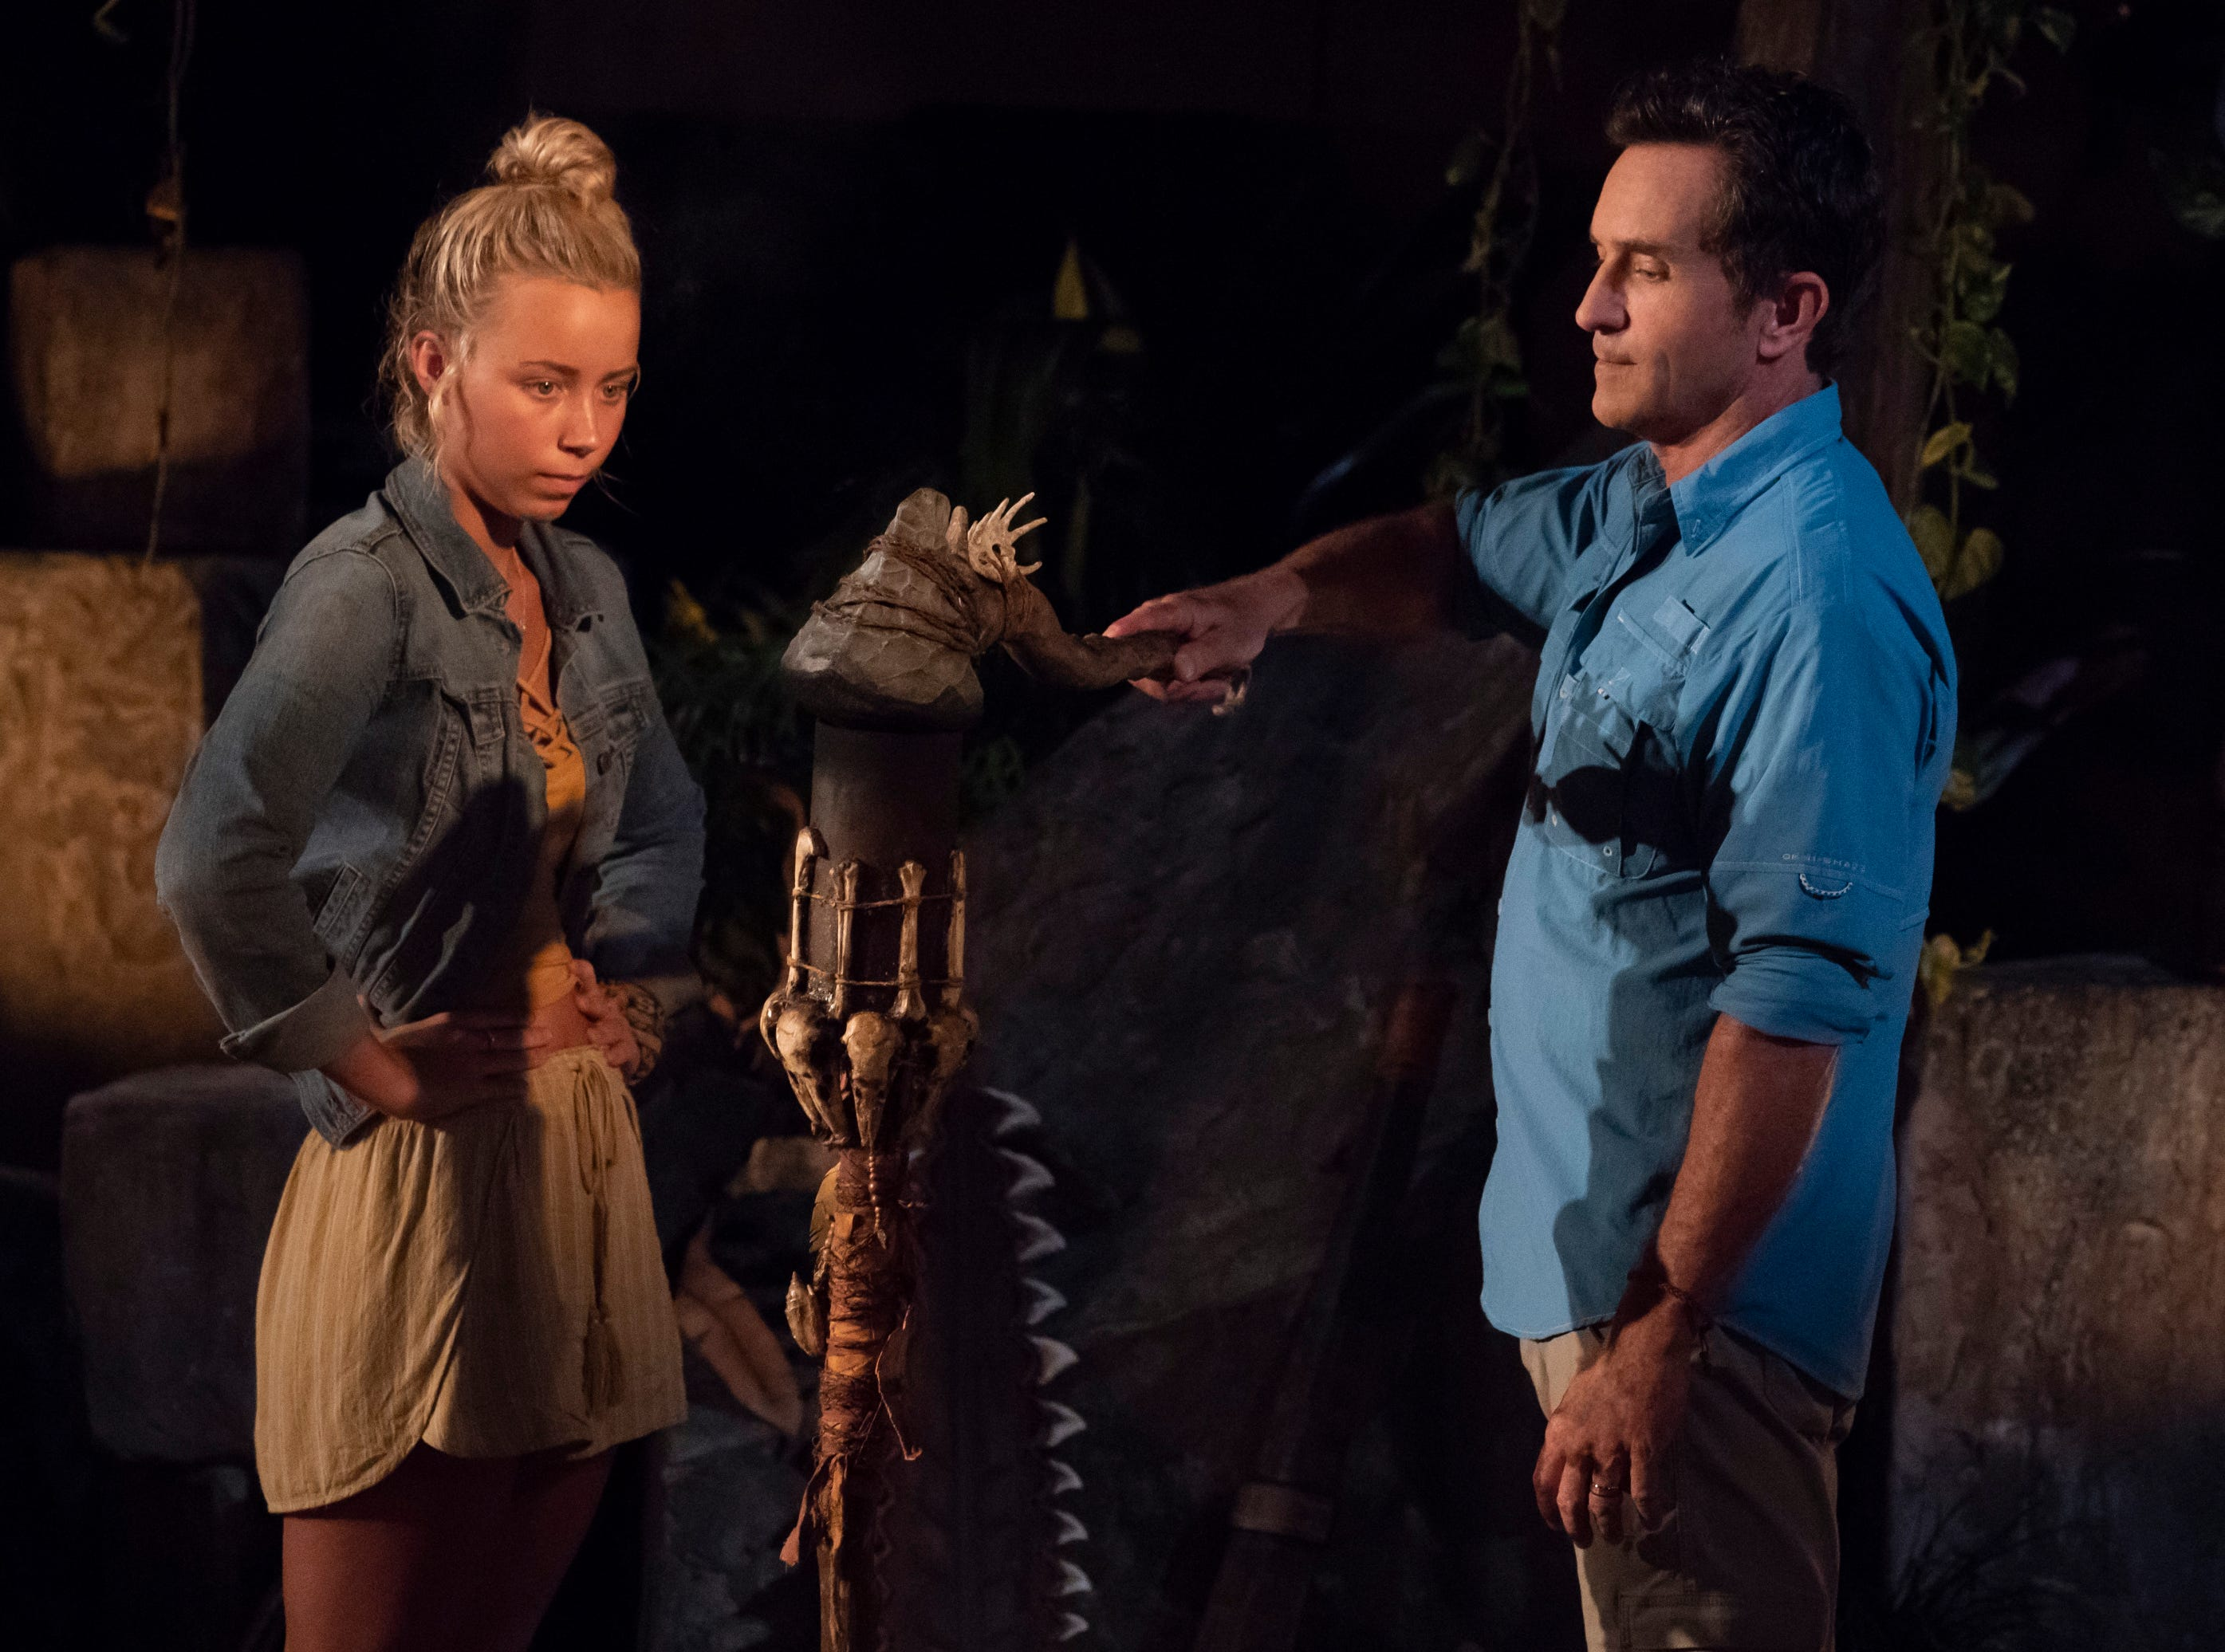 """""""The Chicken Has Flown the Coop"""" - Jeff Probst extinguishes Jessica Peet\'s torch at Tribal Council on the second episode of SURVIVOR: David vs. Goliath, airing Wednesday, Oct. 3 (8:00-9:00 PM, ET/PT) on the CBS Television Network. Photo: Robert Voets/CBS Entertainment  ©2018 CBS Broadcasting, Inc. All Rights Reserved."""